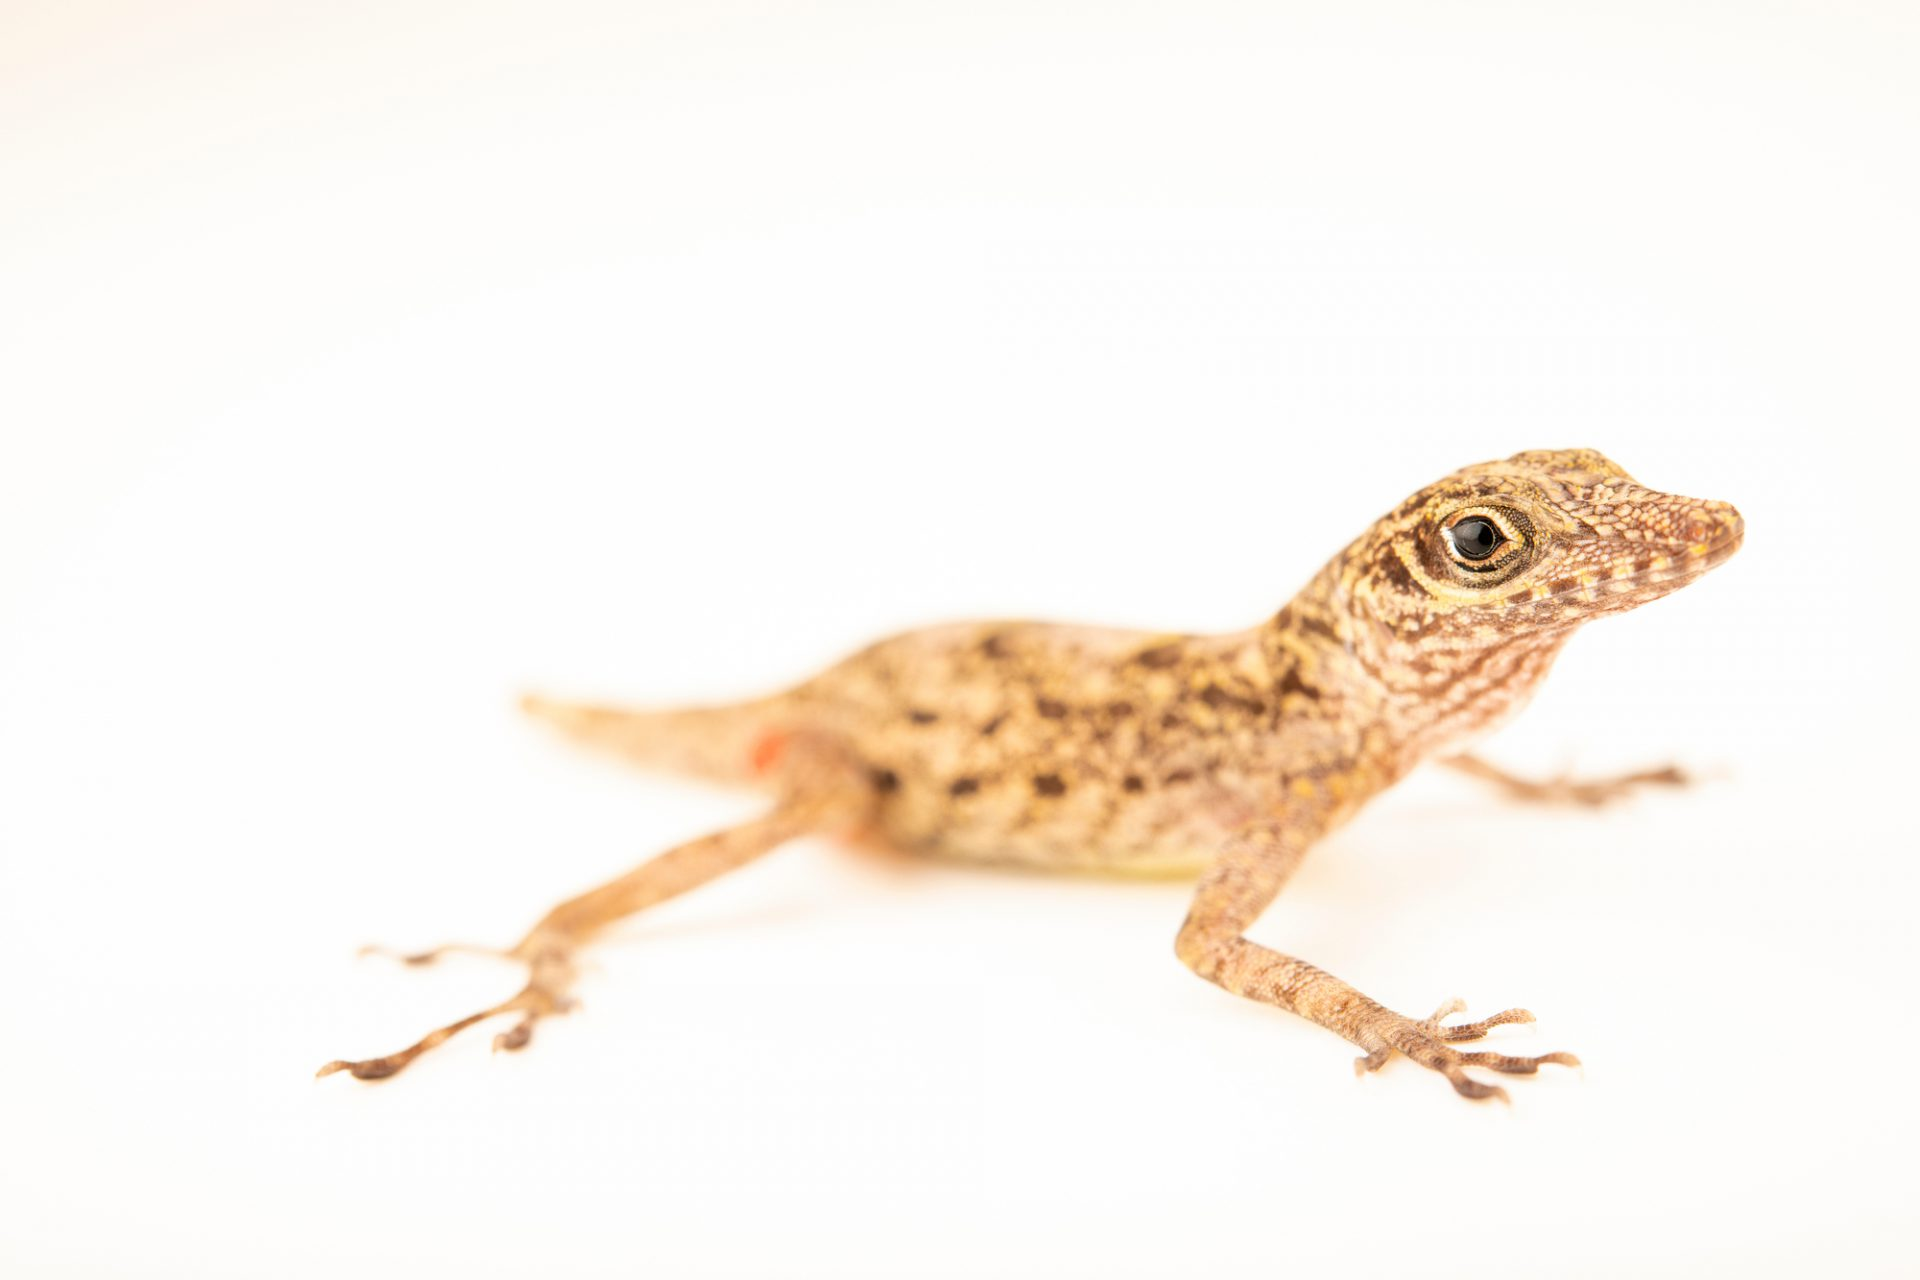 Photo: Guantanamo Anole (Anolis argenteolus) from a private collection.